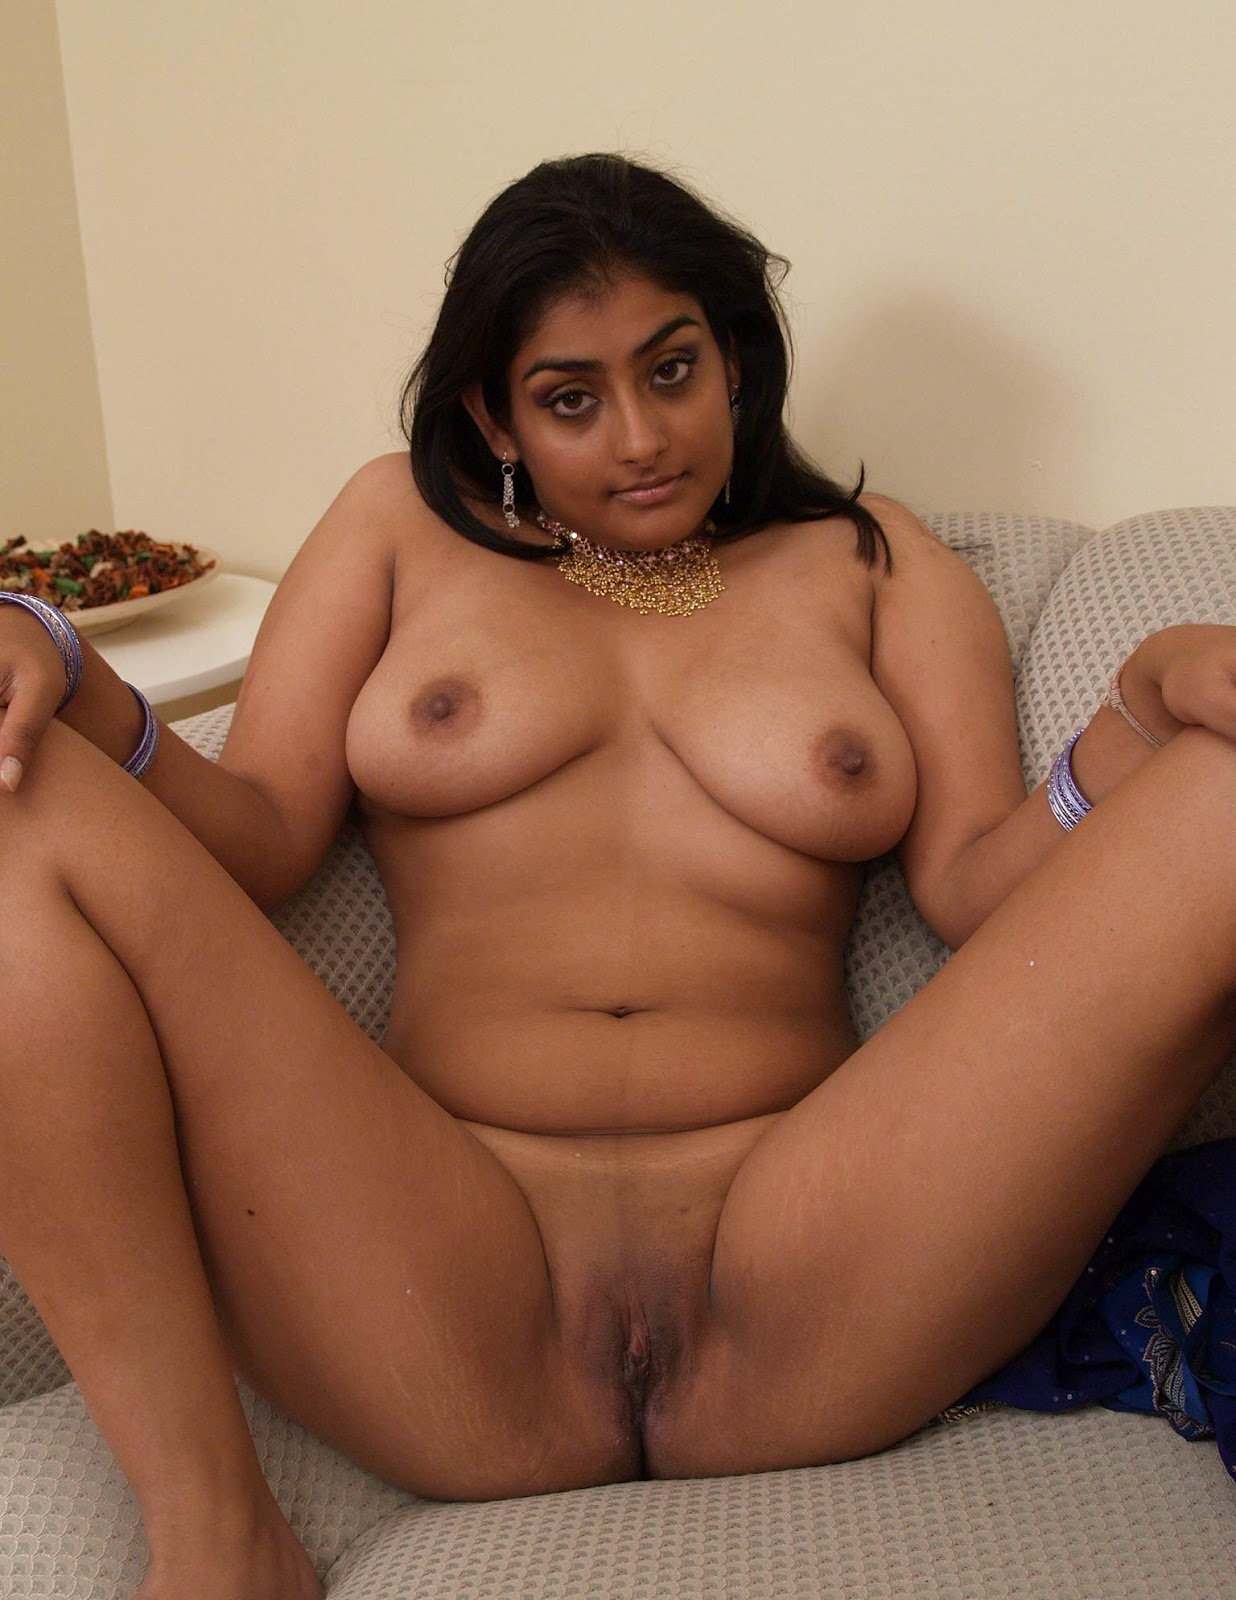 Sexy Naked Indian Girls Nude